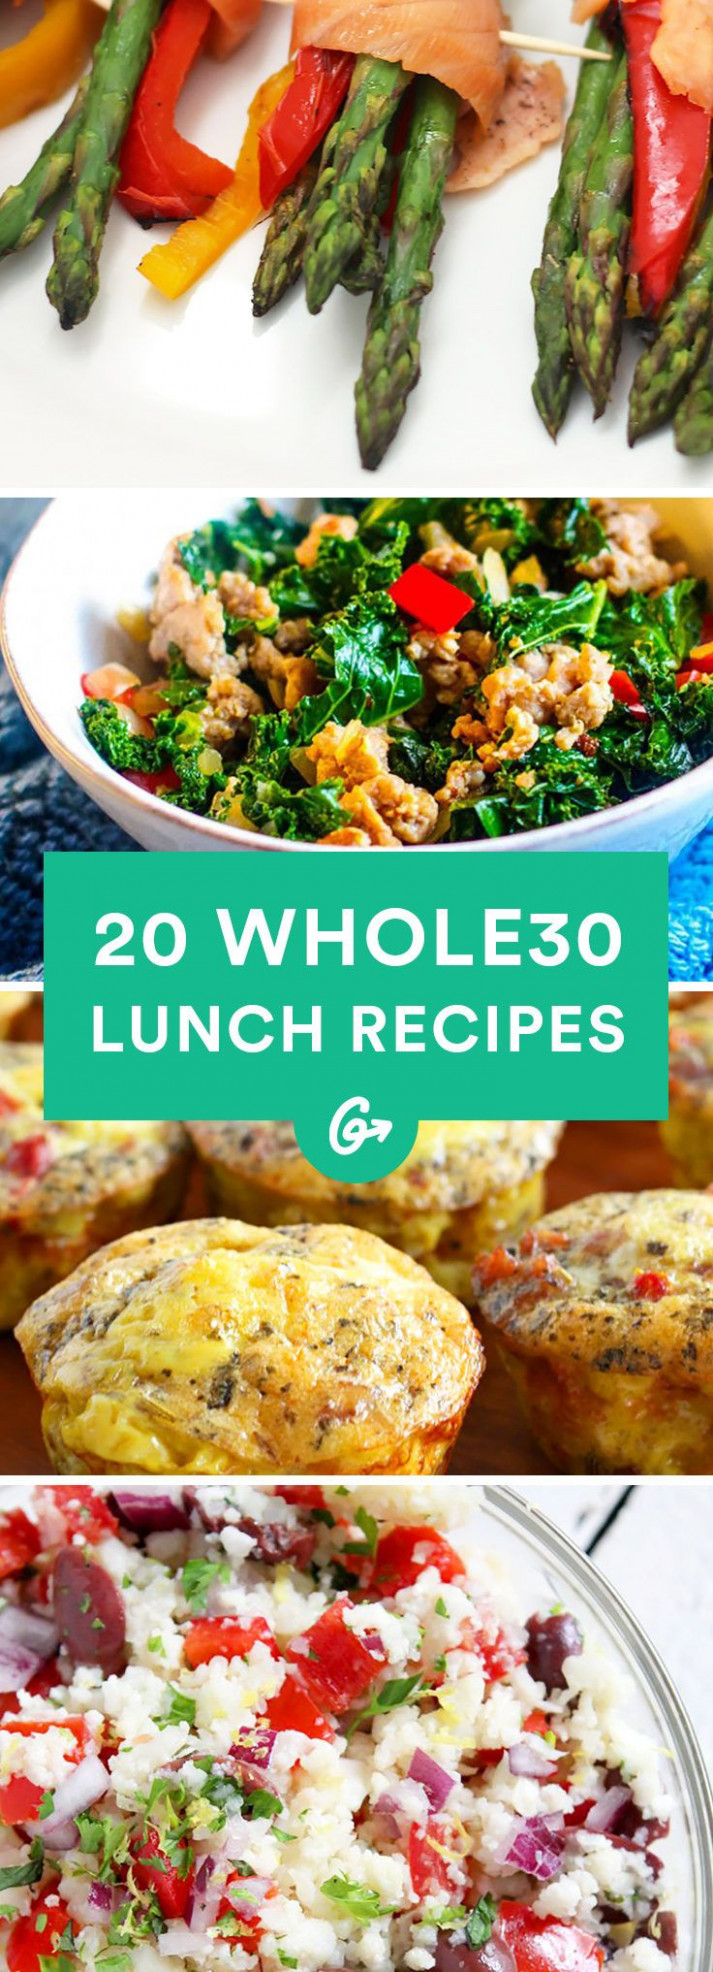 20 Easy and Tasty Whole30 Lunch Recipes   Paleo is the way ...